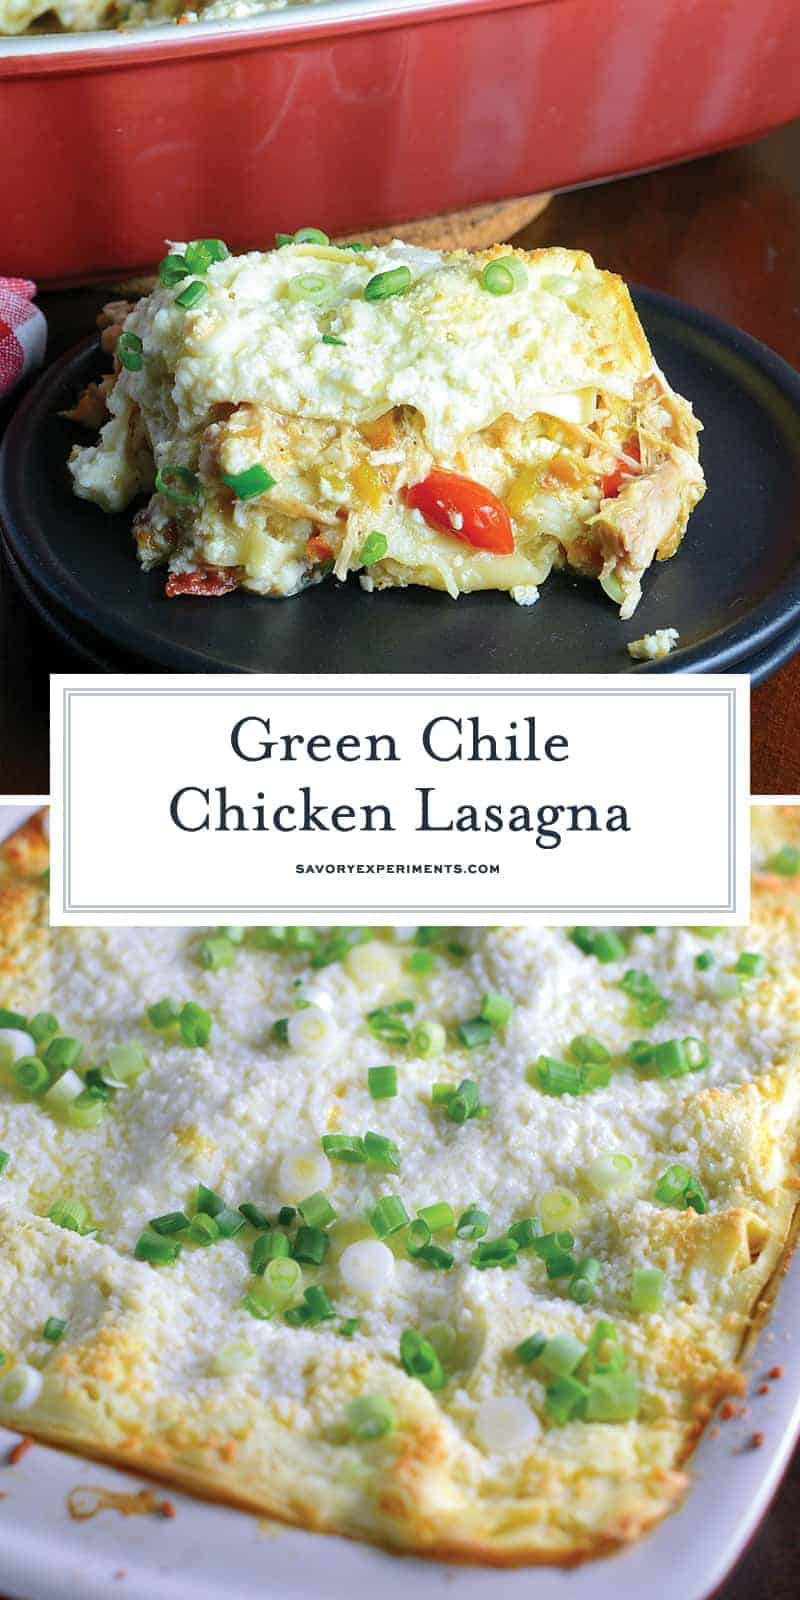 Green Chile Chicken Lasagna is a make-ahead and freezer friendly meal layering no-bake lasagna noodles with shredded chicken, spices, green chiles and lots of cheese! #chickenlasagna #mexicanlasagna www.savoryexperiments.com